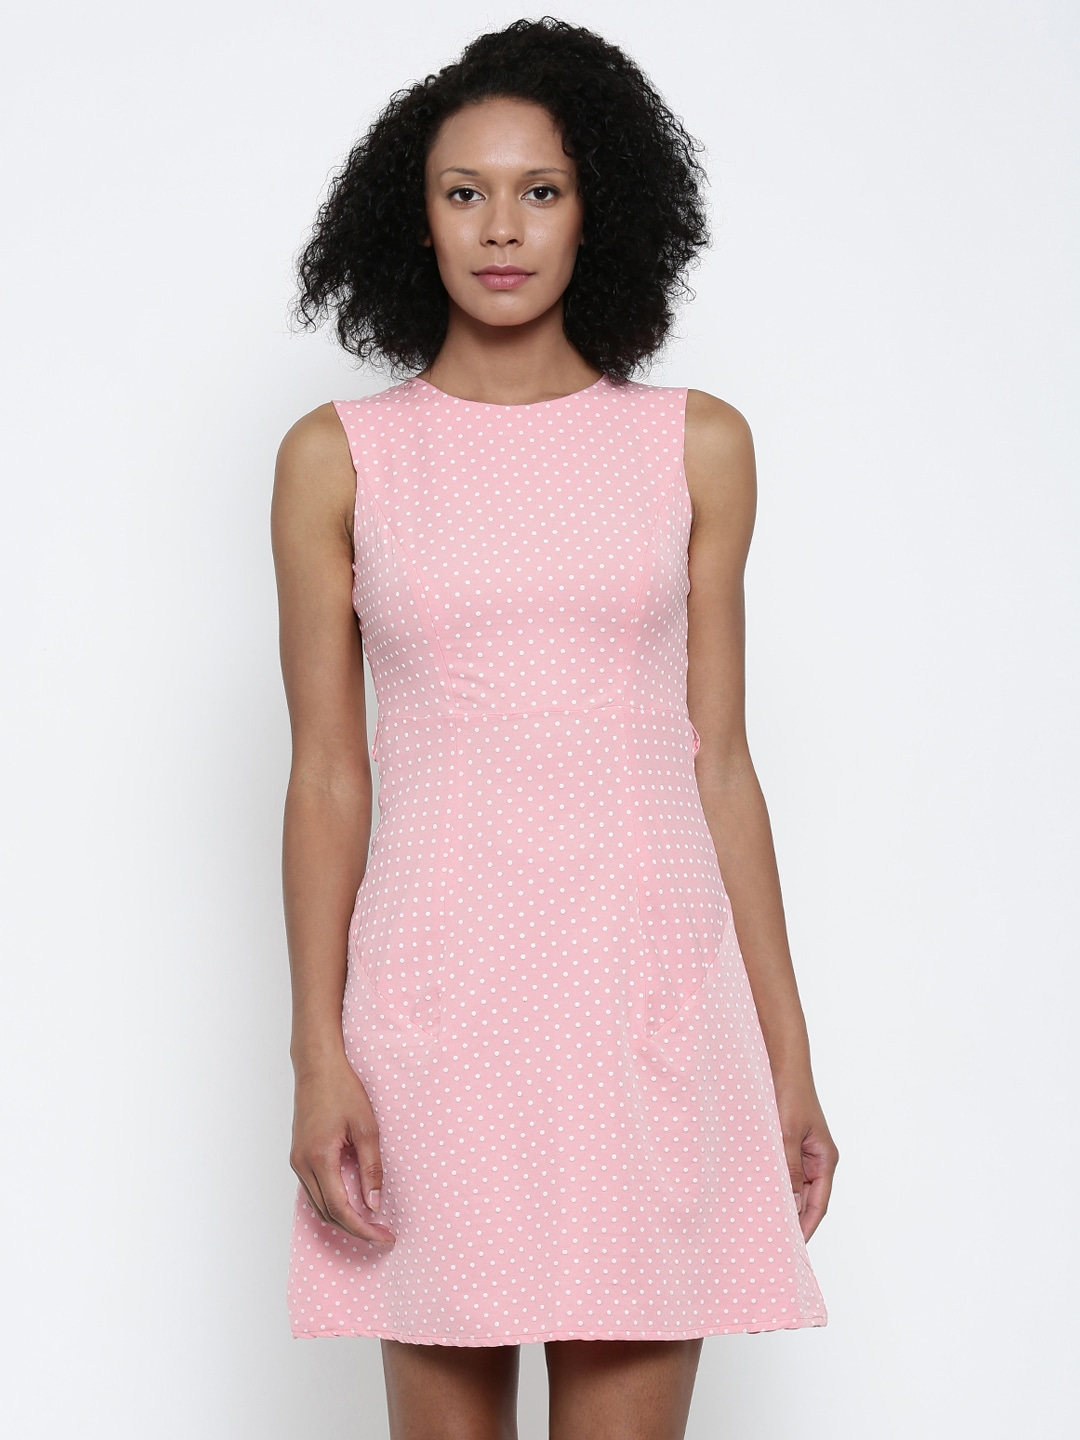 Park Avenue Woman Pink Printed Fit & Flare Dress image